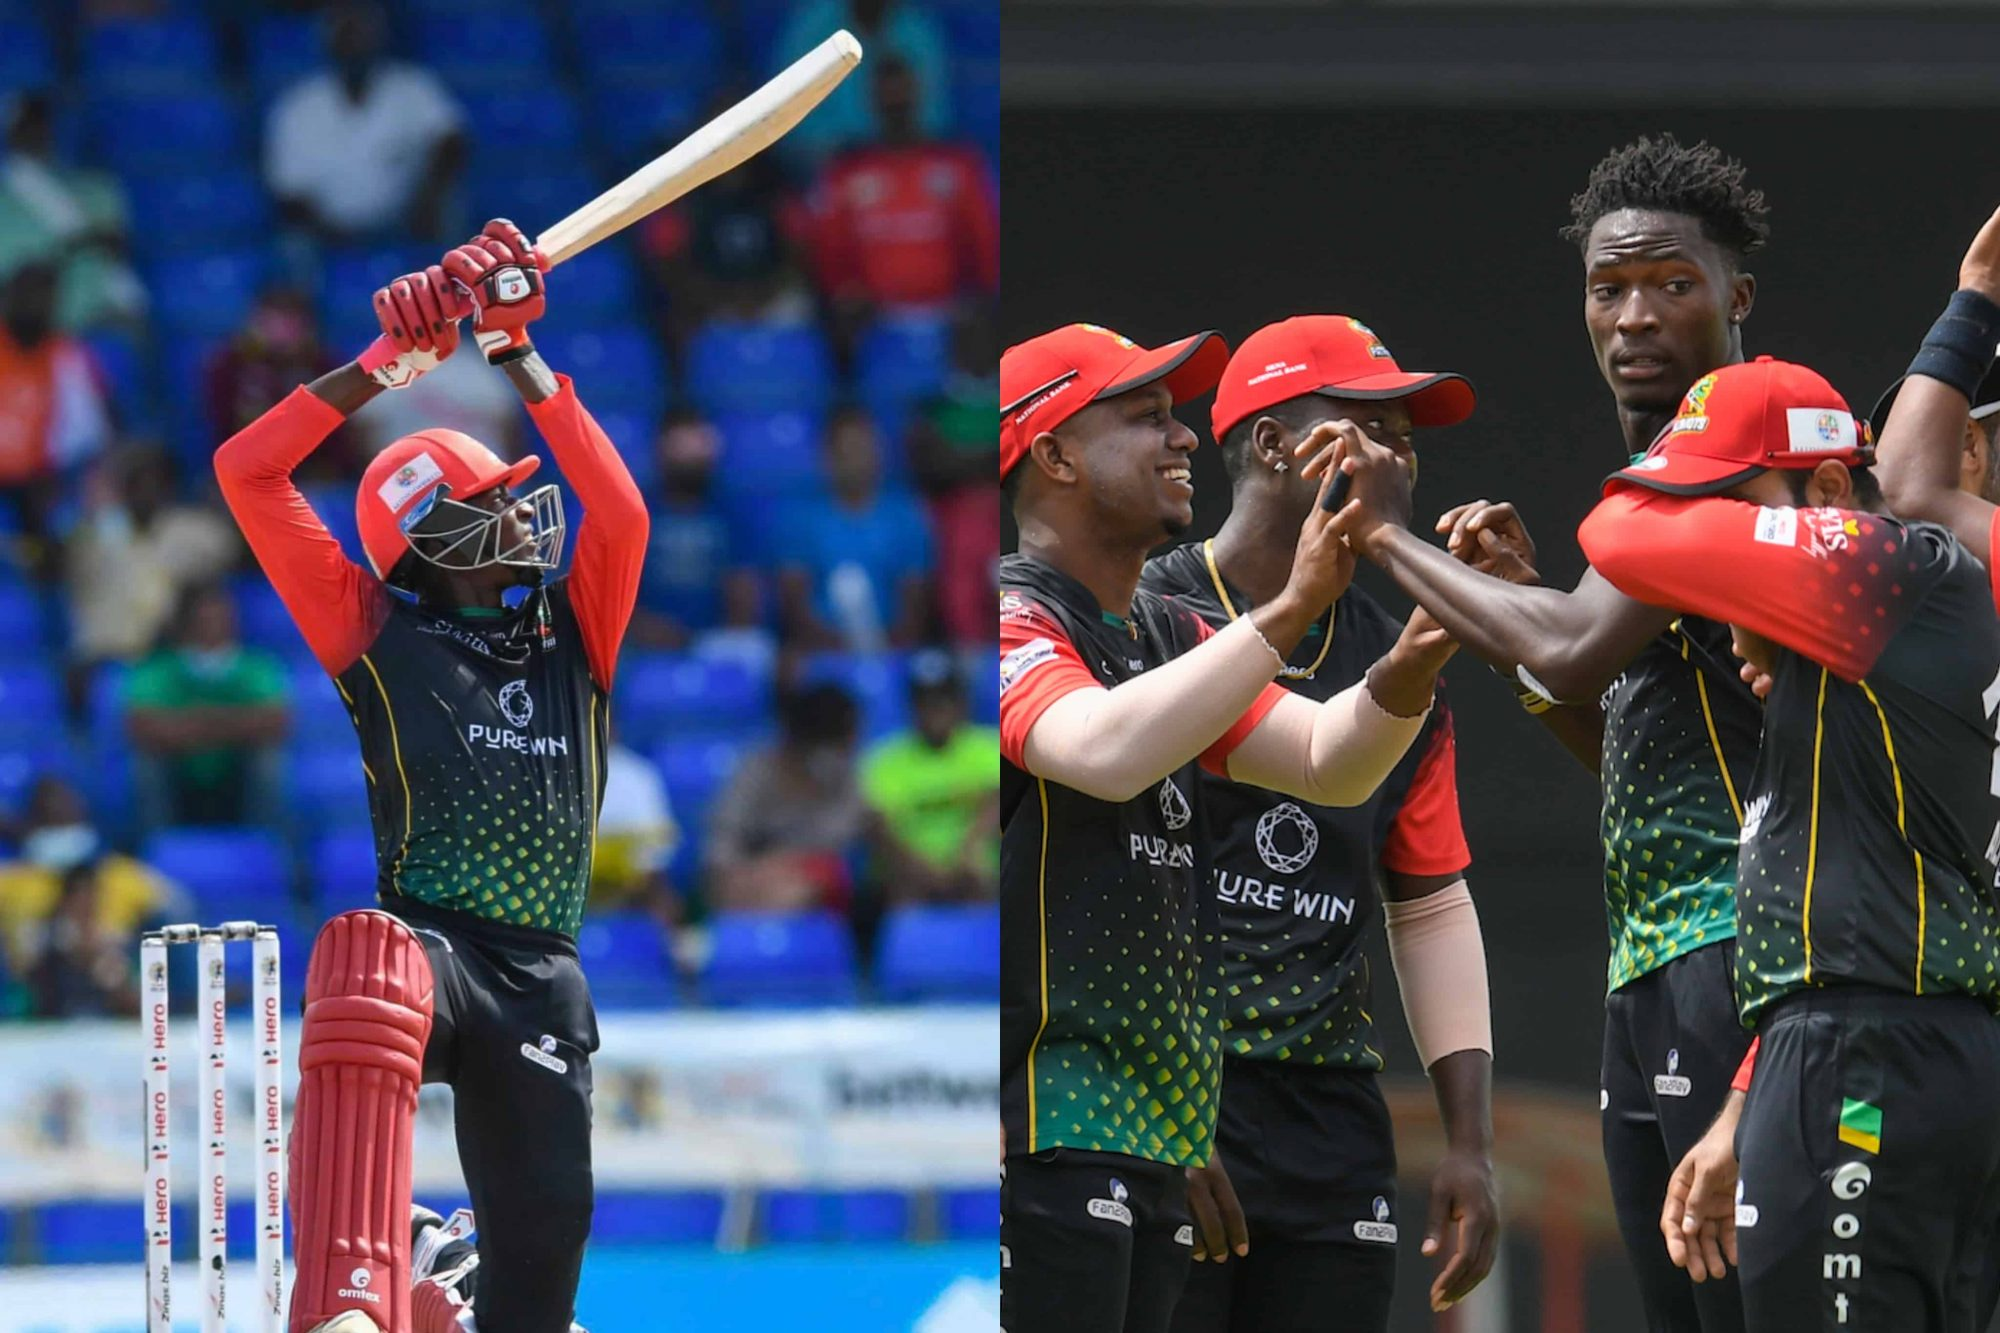 CPL 2021: St Kitts & Nevis Patriots Win Maiden Title With Last-Ball Victory Against St Lucia Kings